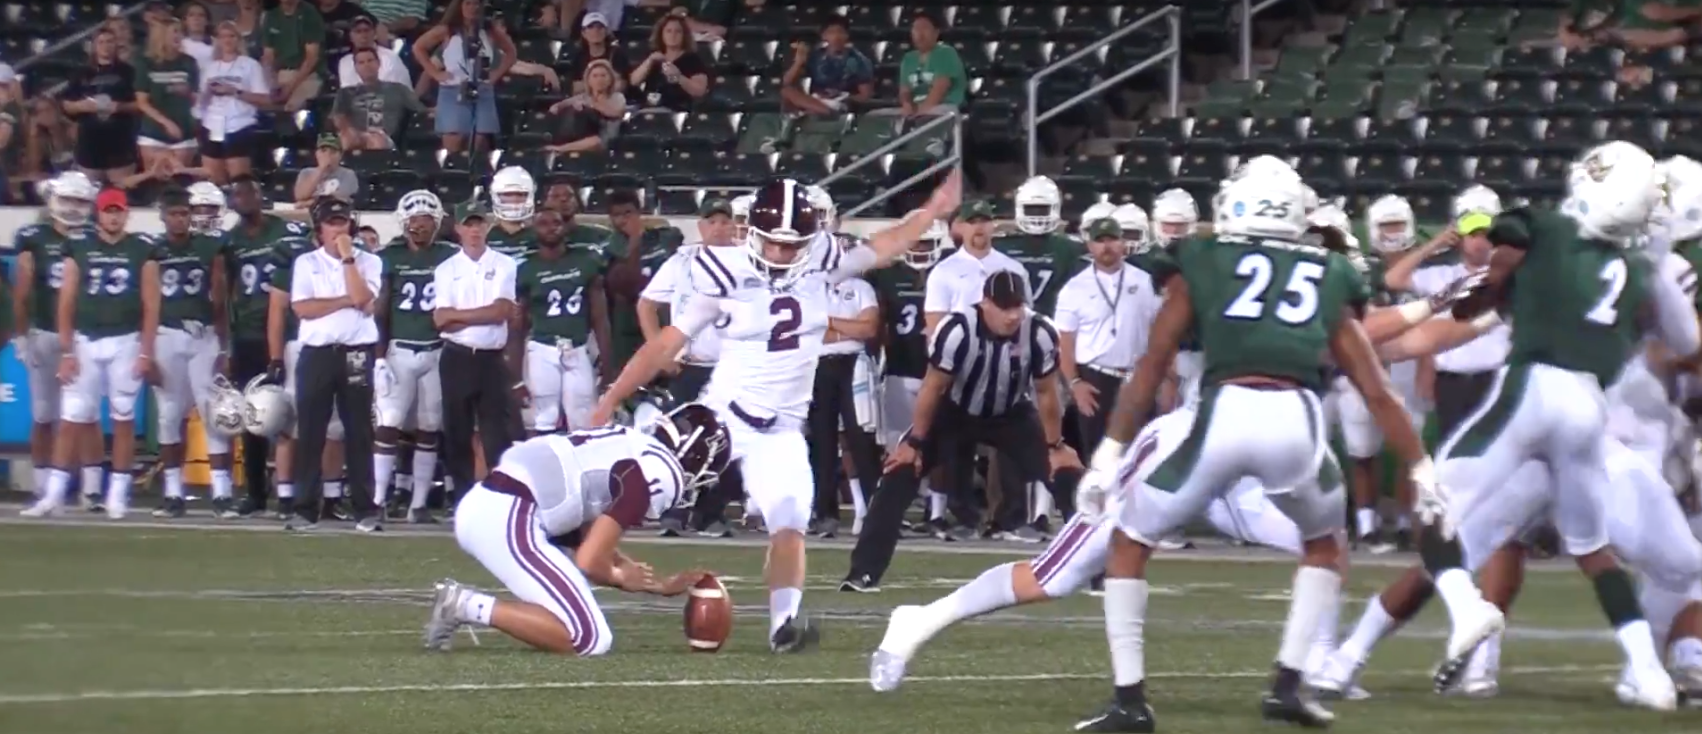 Sophomore kicker Andrew Mevis's 32-yard field goal was the only Rams score of the second half. (Courtesy of Fordham Athletics)